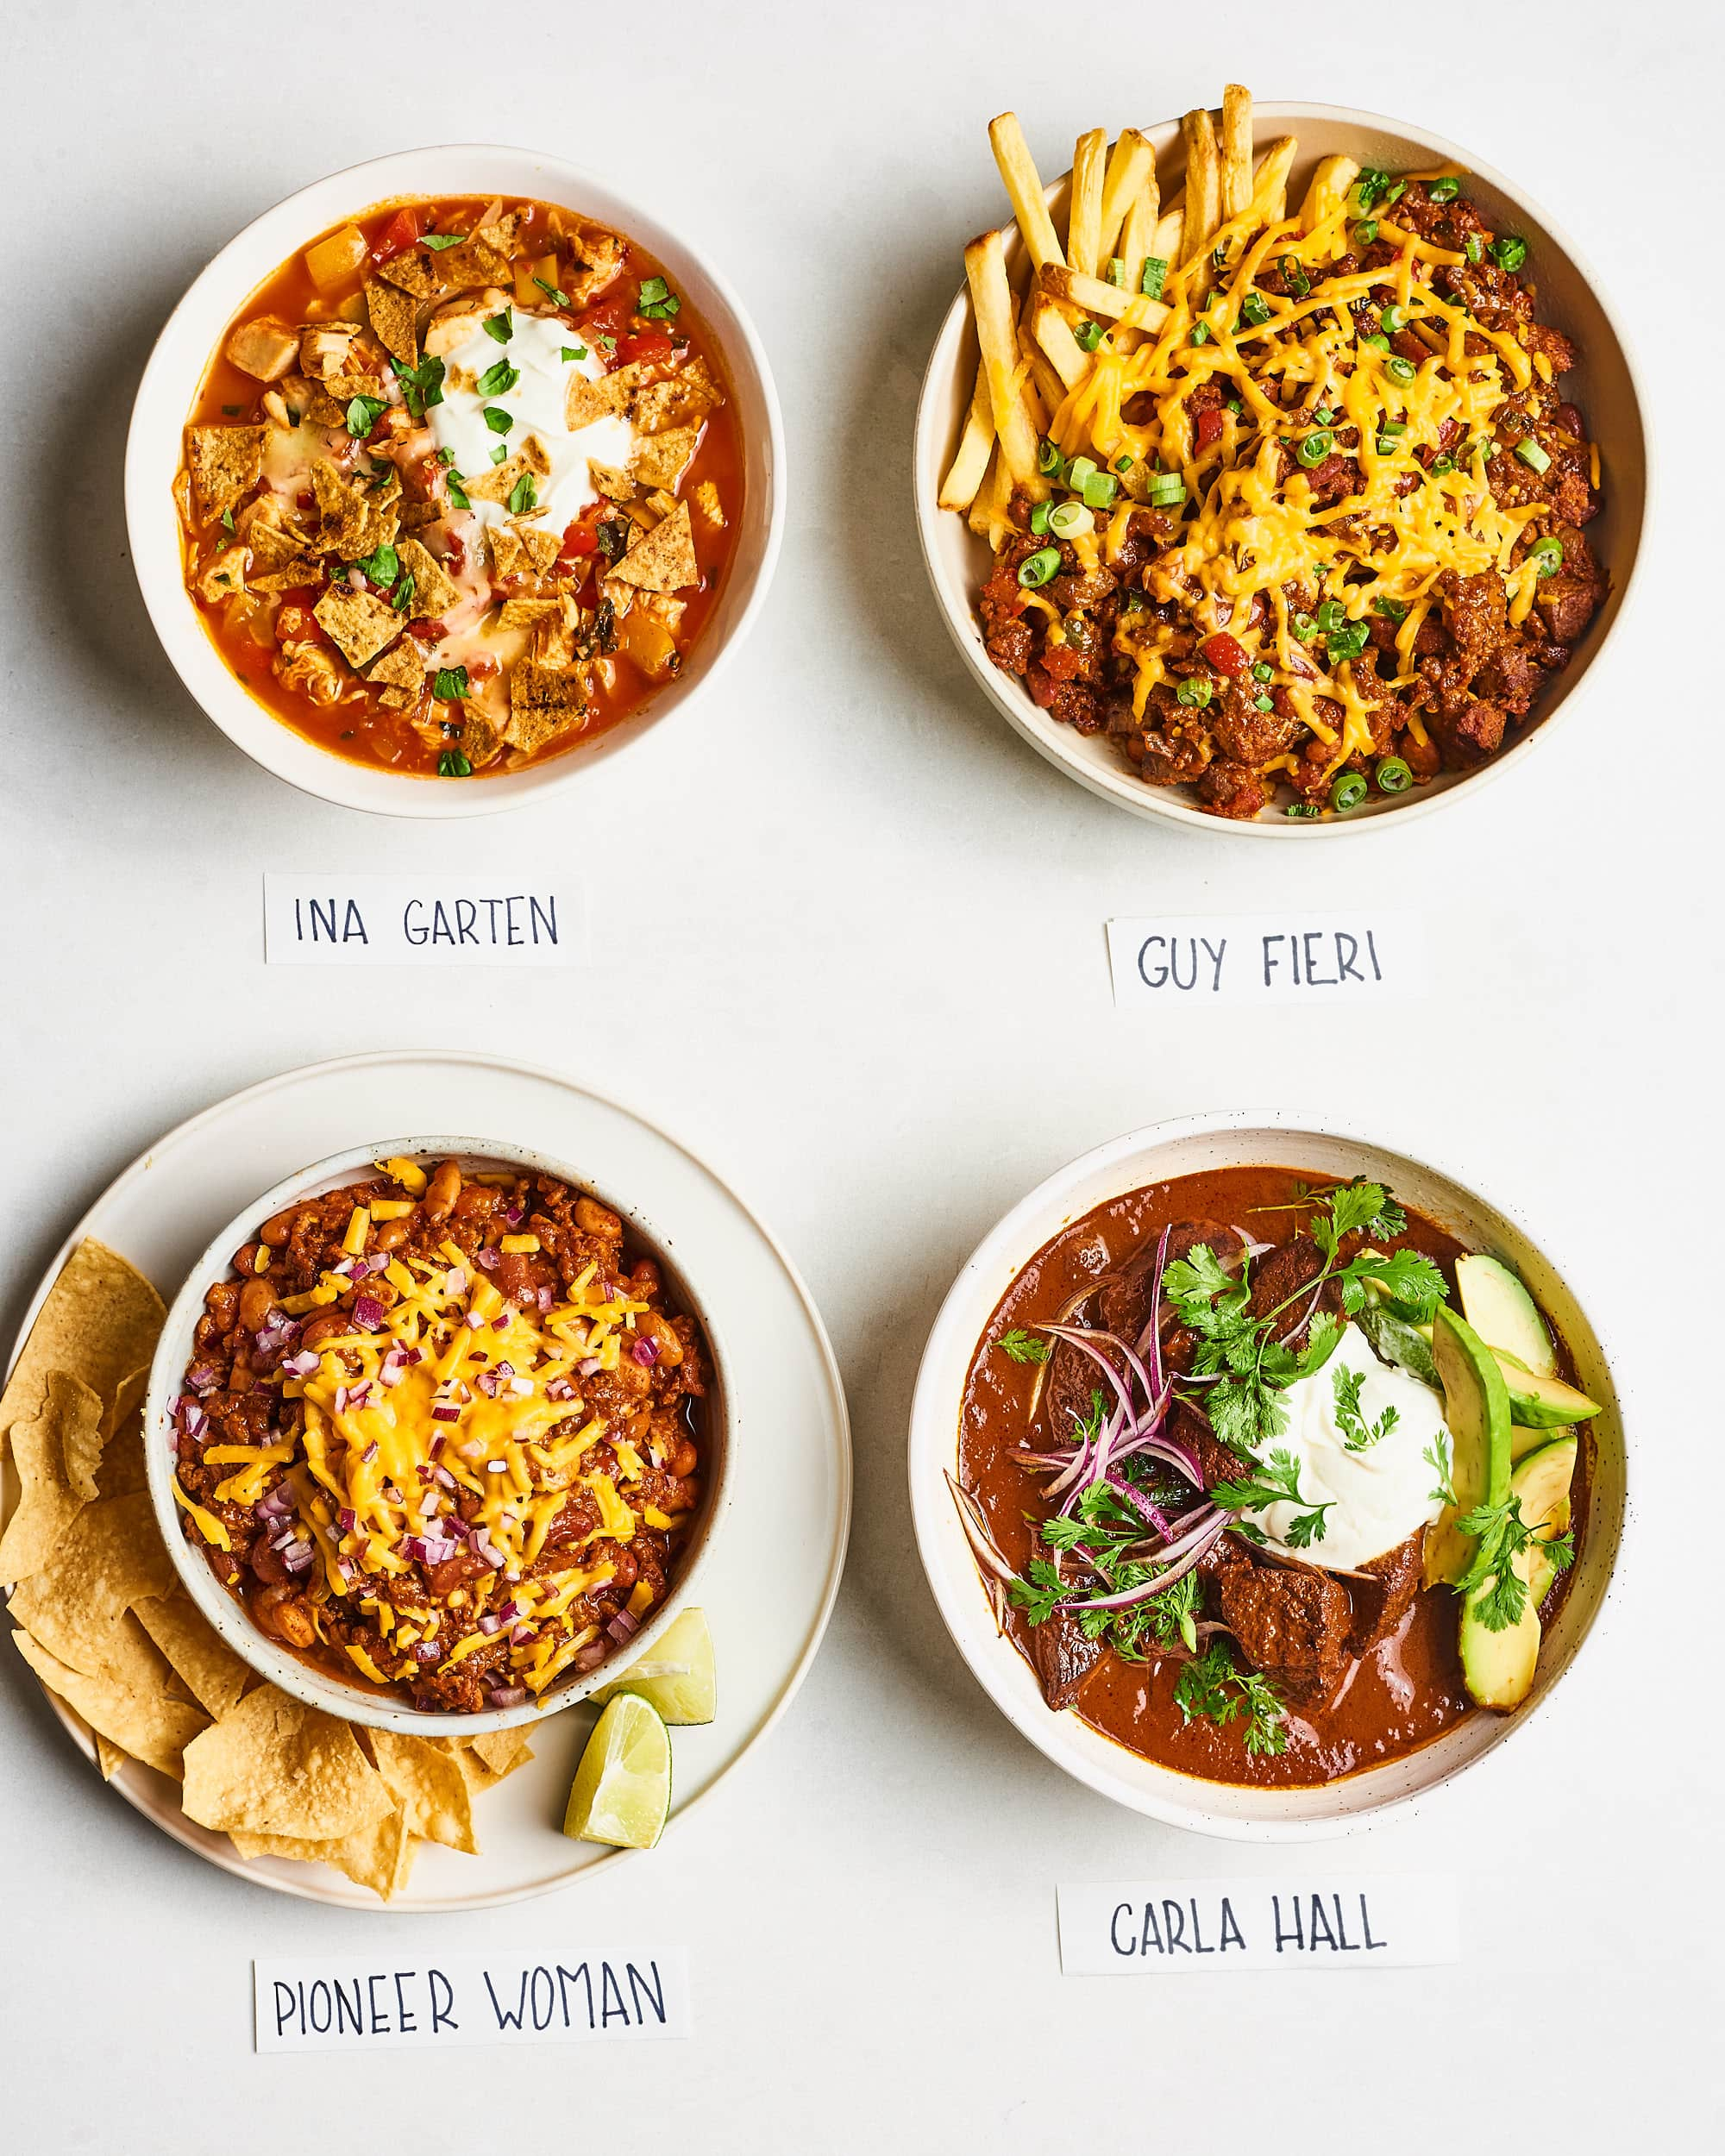 Who Wins the Title of Best Chili Ever?